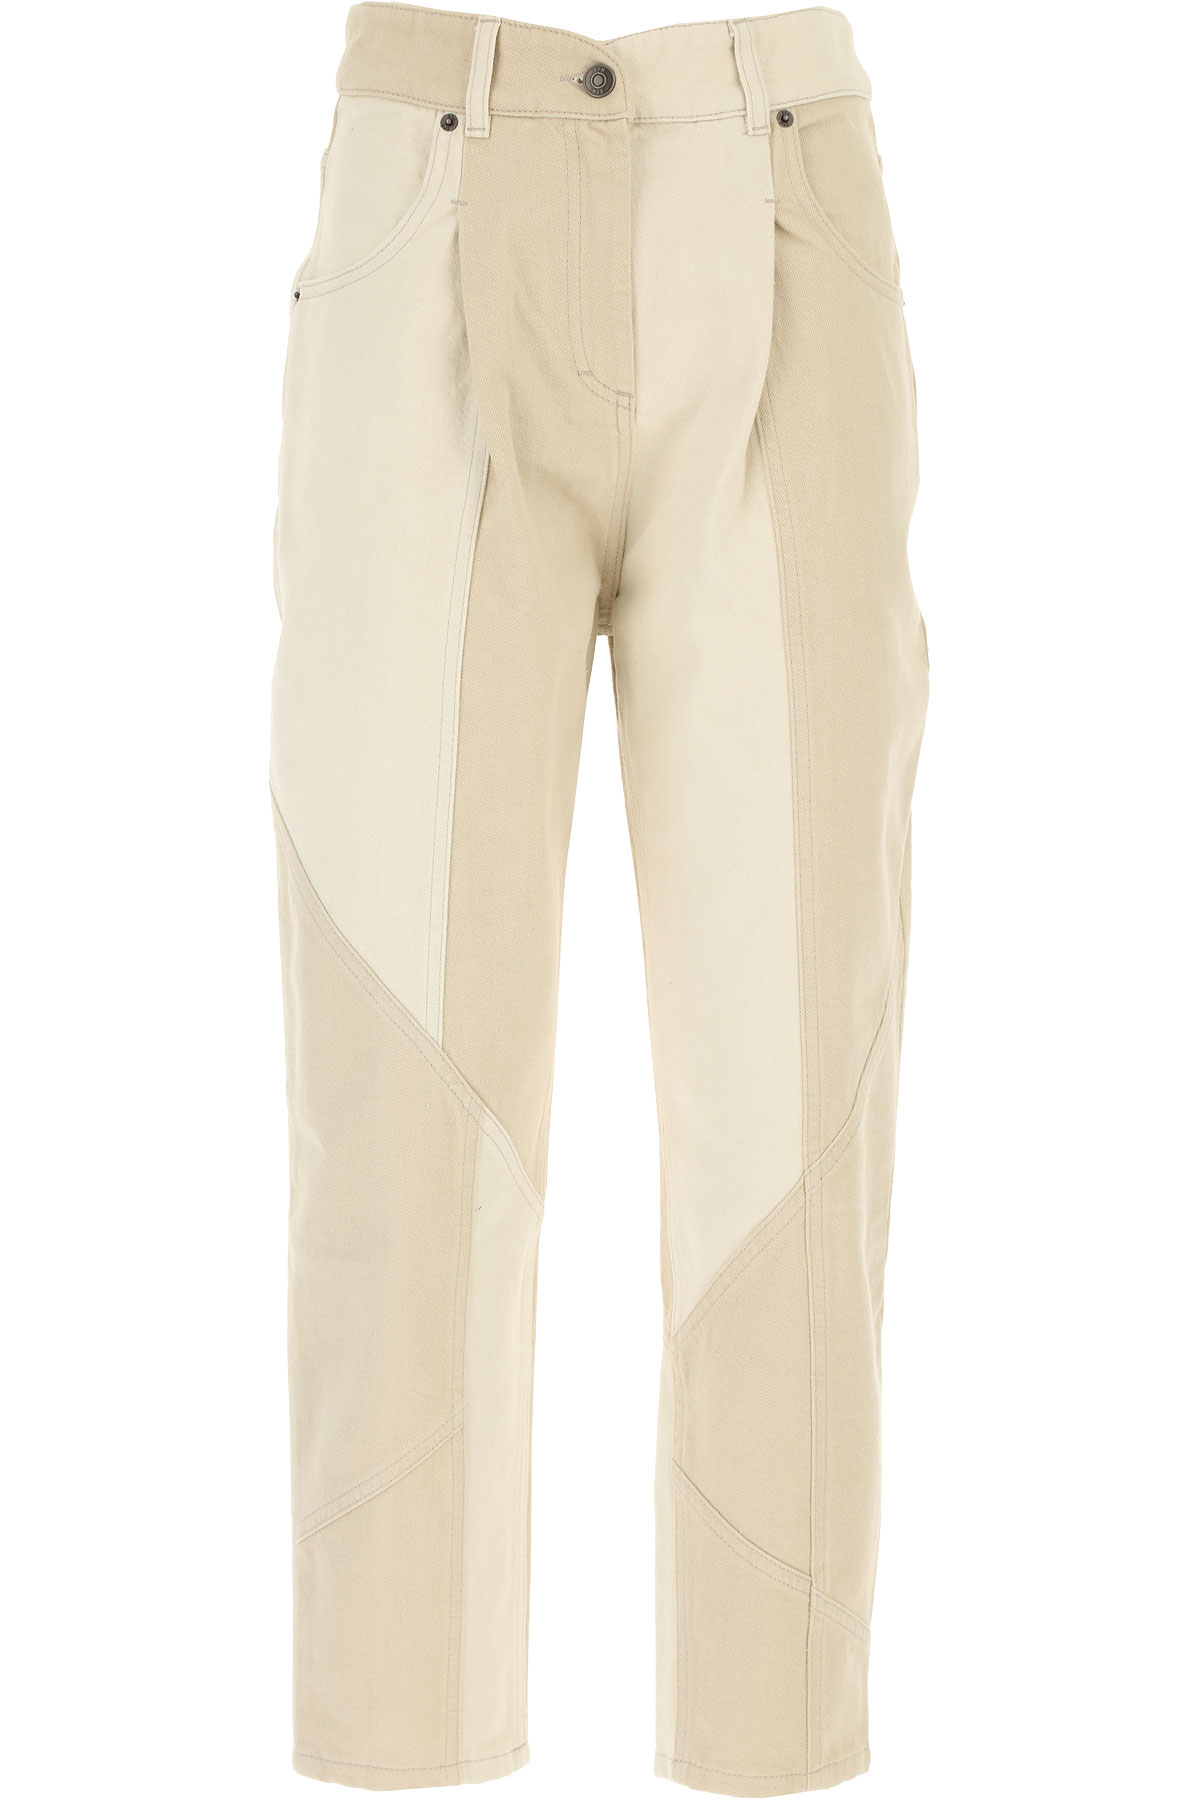 8 PM Pants for Women On Sale, White, Cotton, 2019, 25 26 27 28